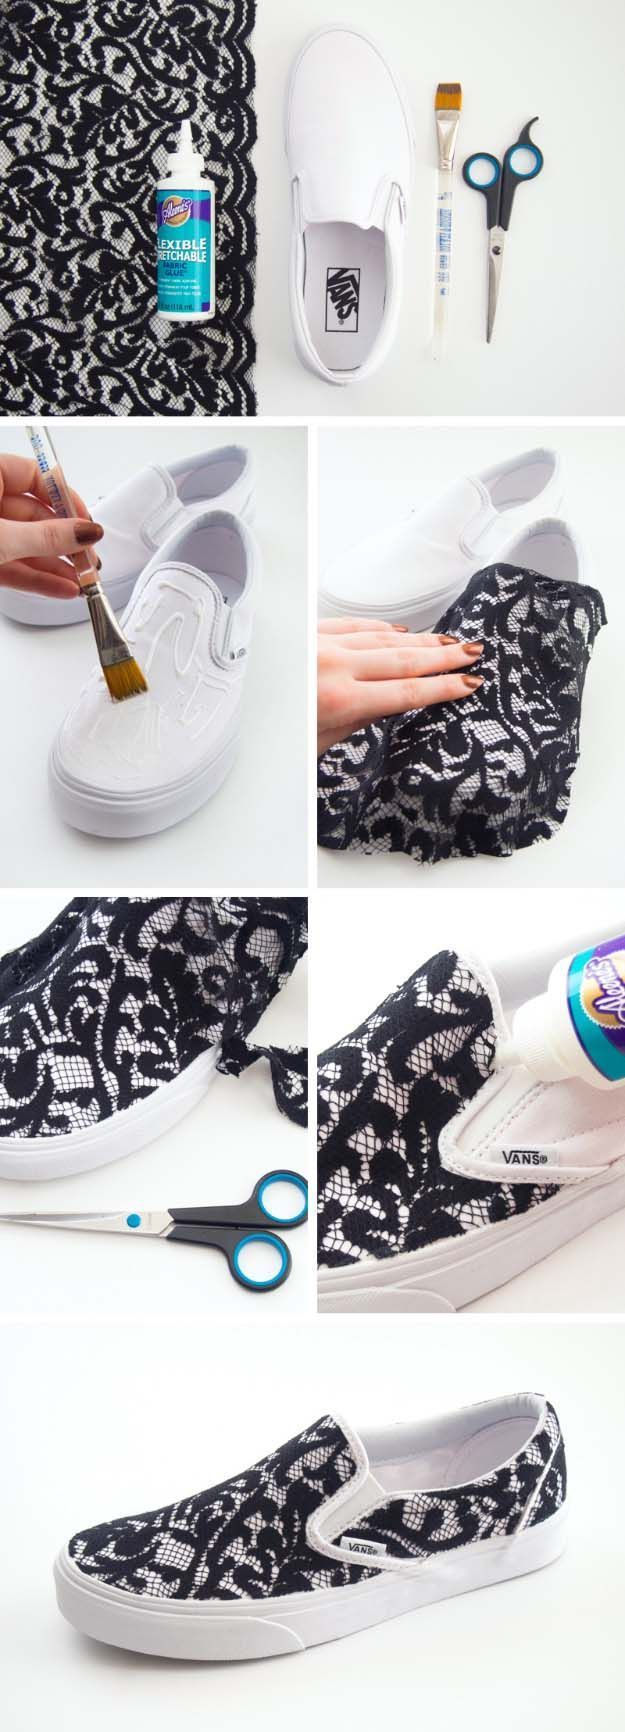 Cool diy fashion ideas zapatos decorar zapatos y artesana cool diy fashion ideas fun do it yourself fashion projects learn how to refashion solutioingenieria Gallery